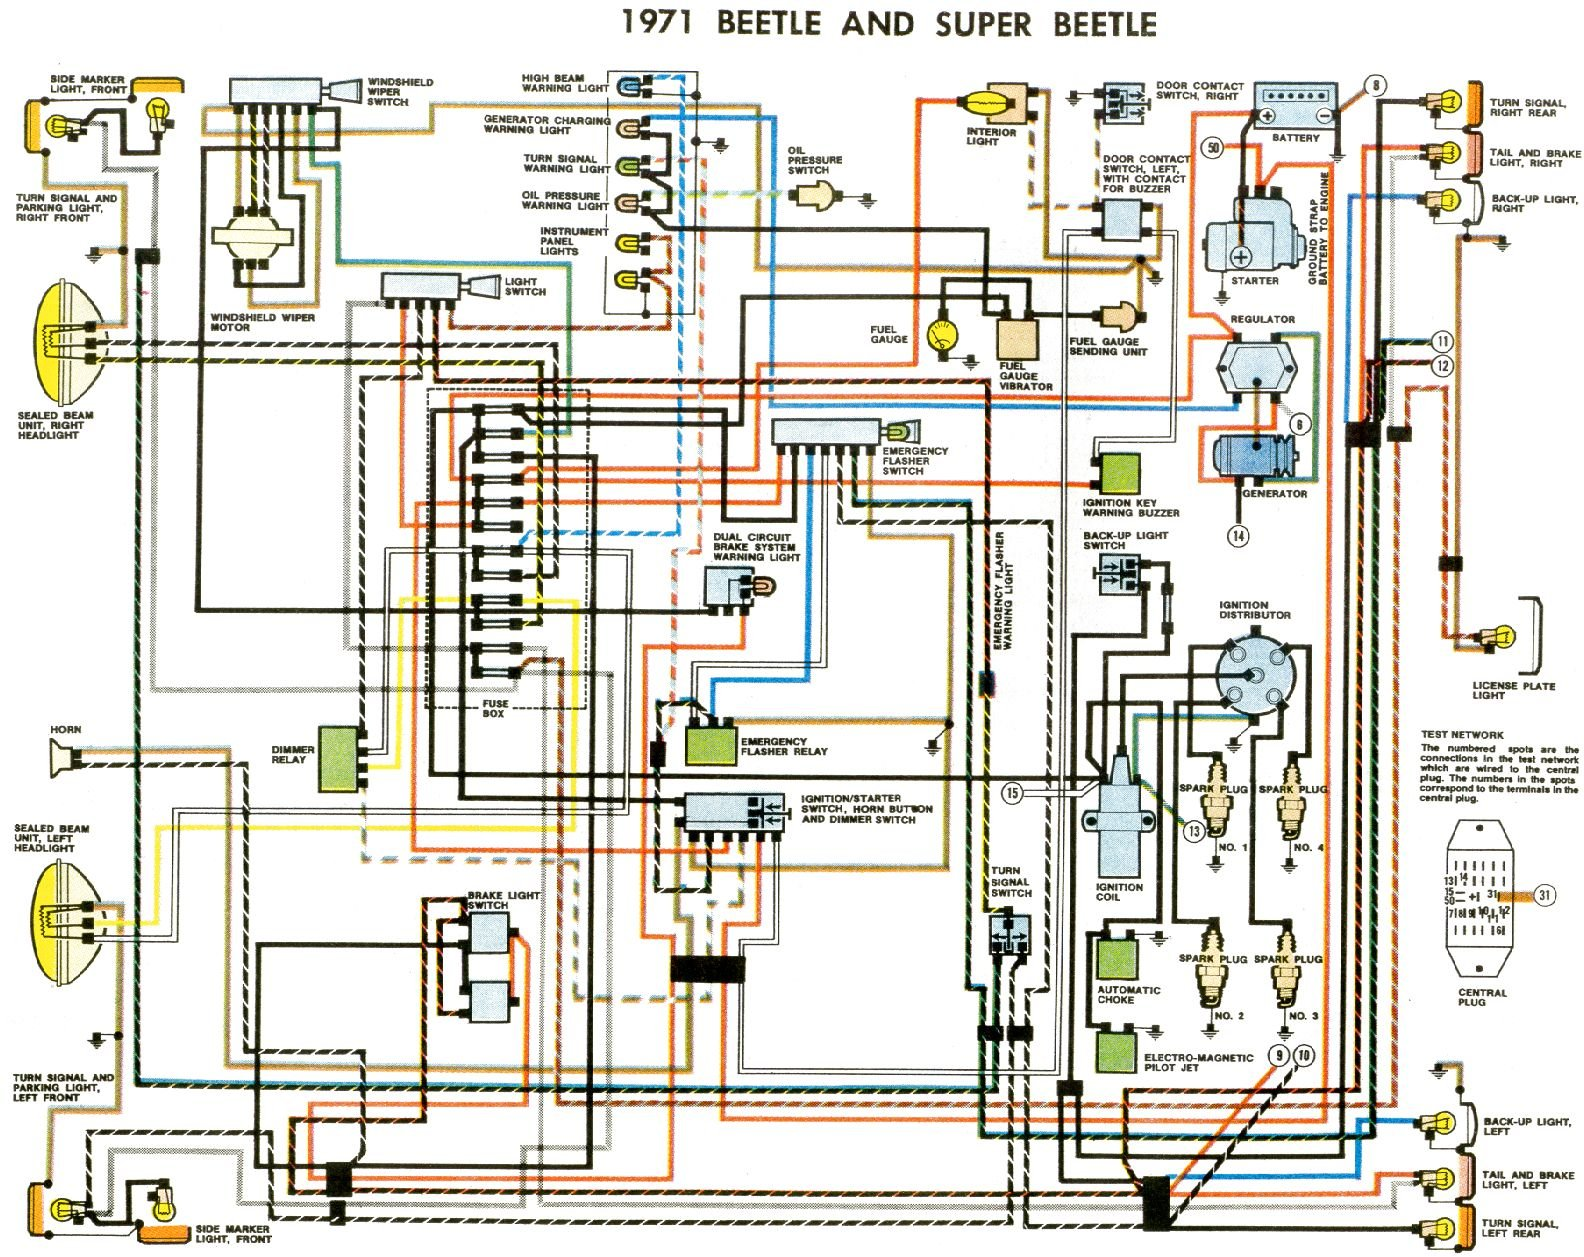 bug_71 1971 beetle wiring diagram (usa) thegoldenbug com 1973 vw wiring diagram at fashall.co